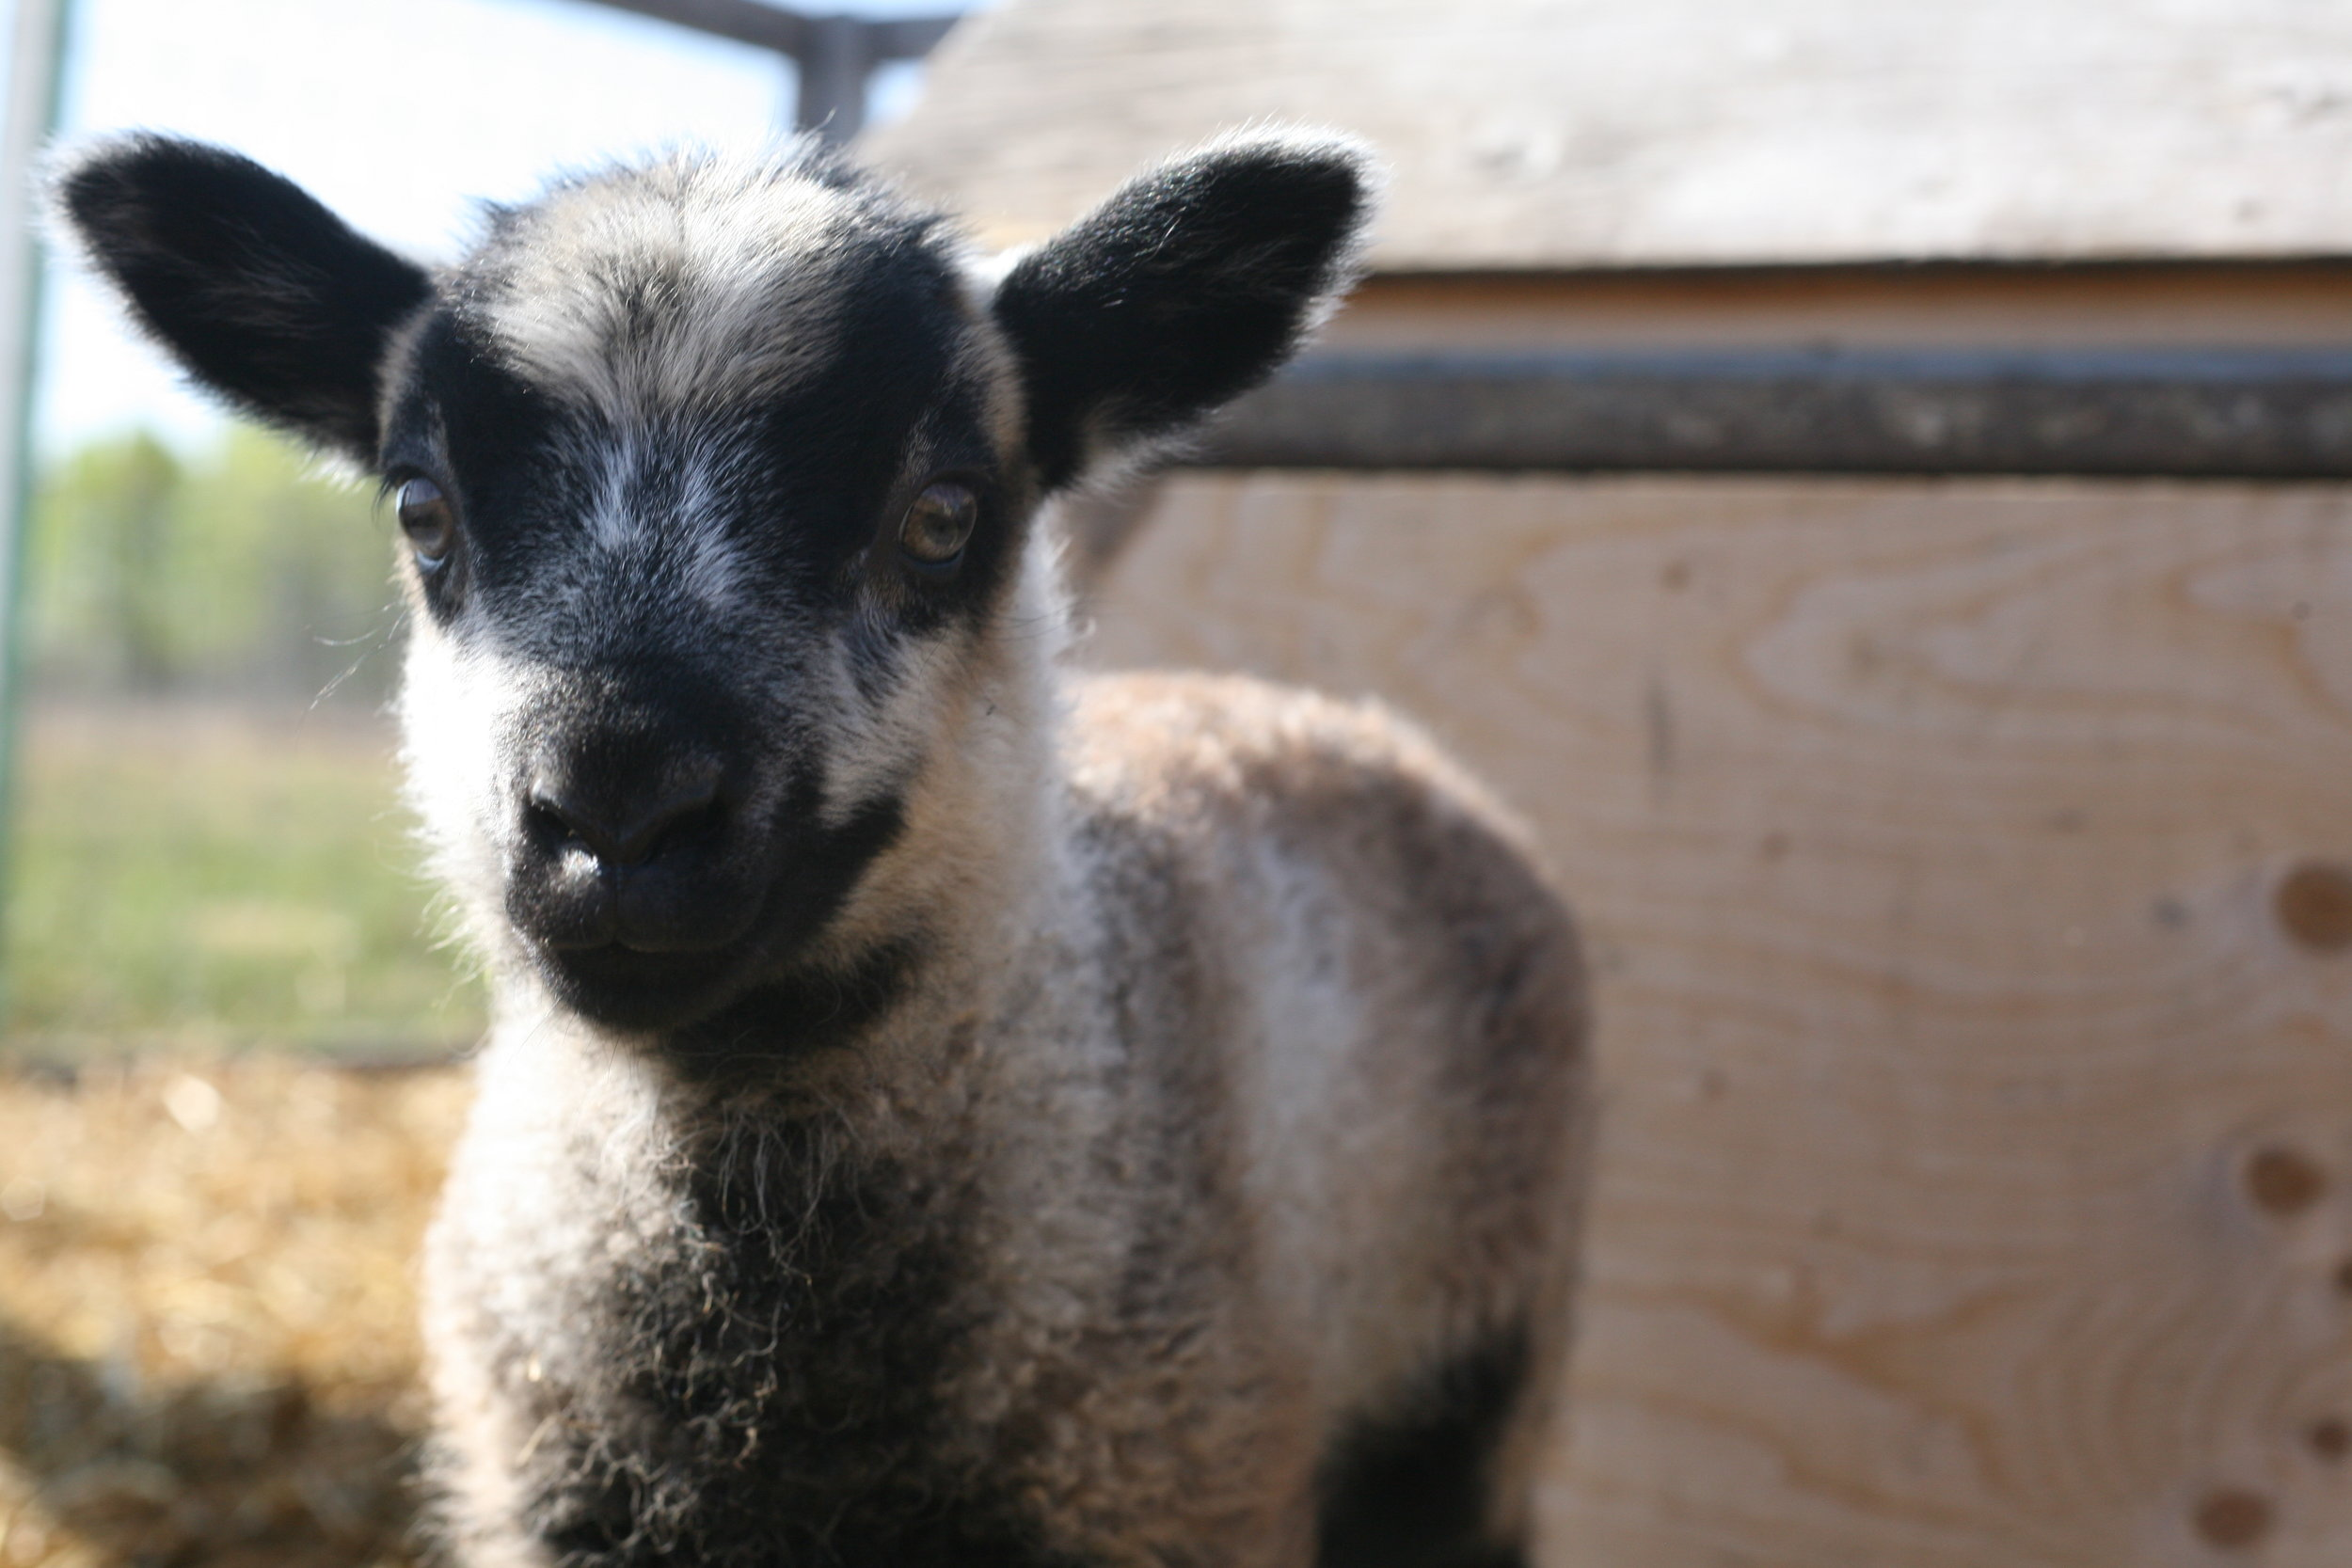 This ewe lamb was born on May 10, 2018 weighing 2.5kg. Her mother is Ashoka and the sire is Muddy, both are purebred shetland sheep. She has a twin brother. She is a very socialized girl, she loves chin scratches and playing with all the other lambs. Her colouring is beautiful as you can see in the pictures. It will be so interesting to watch as the year goes on how her fleece changes.